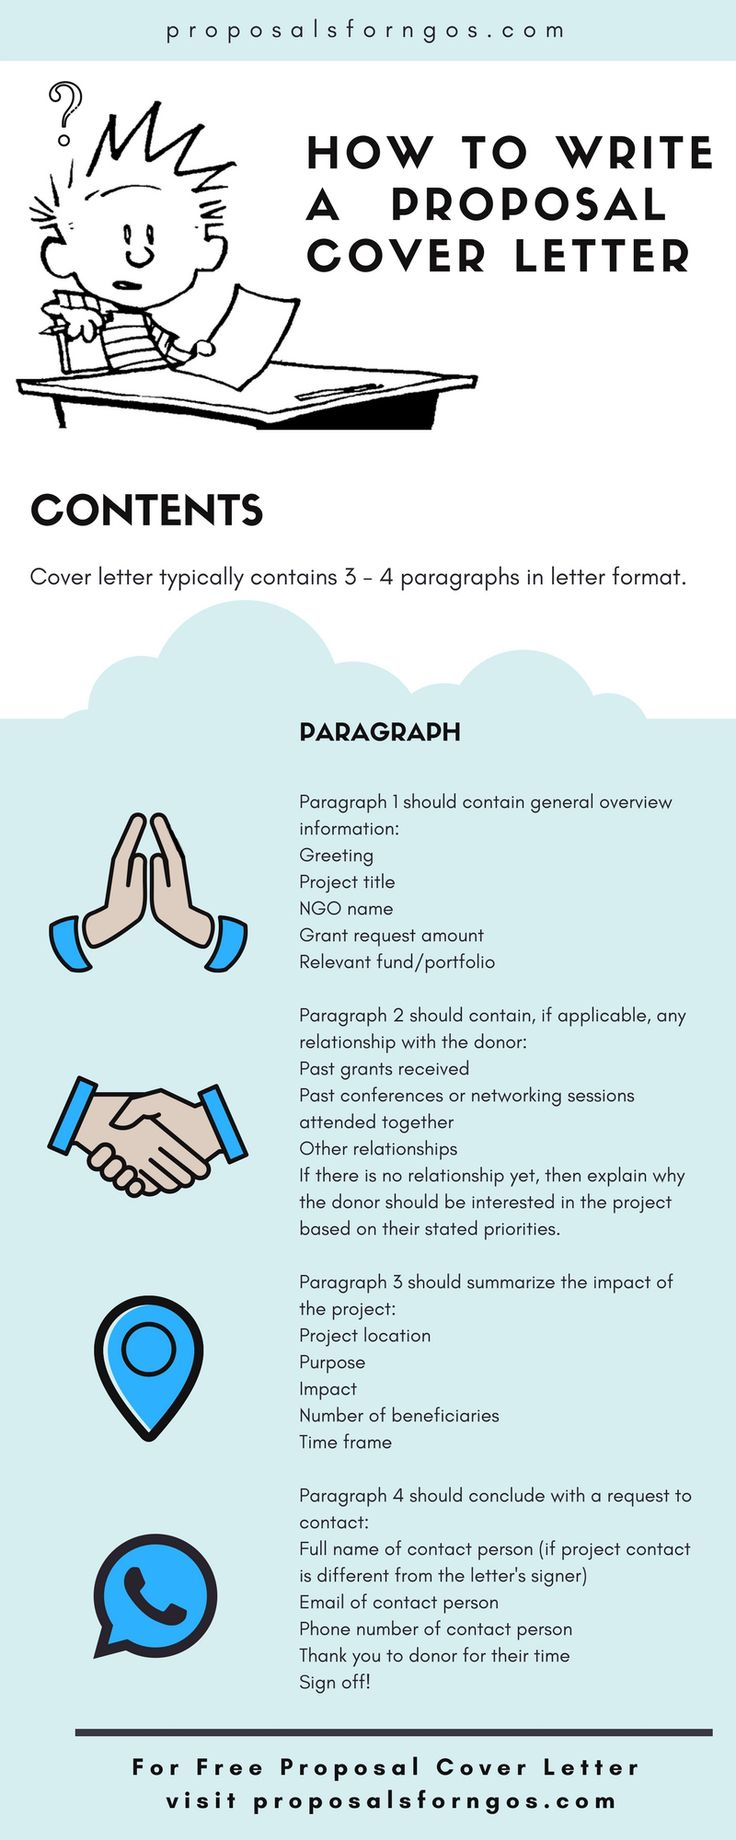 How to write a proposal cover letter? #coverletter #coverlettertemplate #samplecoverletter #proposalcoverletter #Proposal #proposalwriting #grantapplication #grant #ngo #tipsforngos